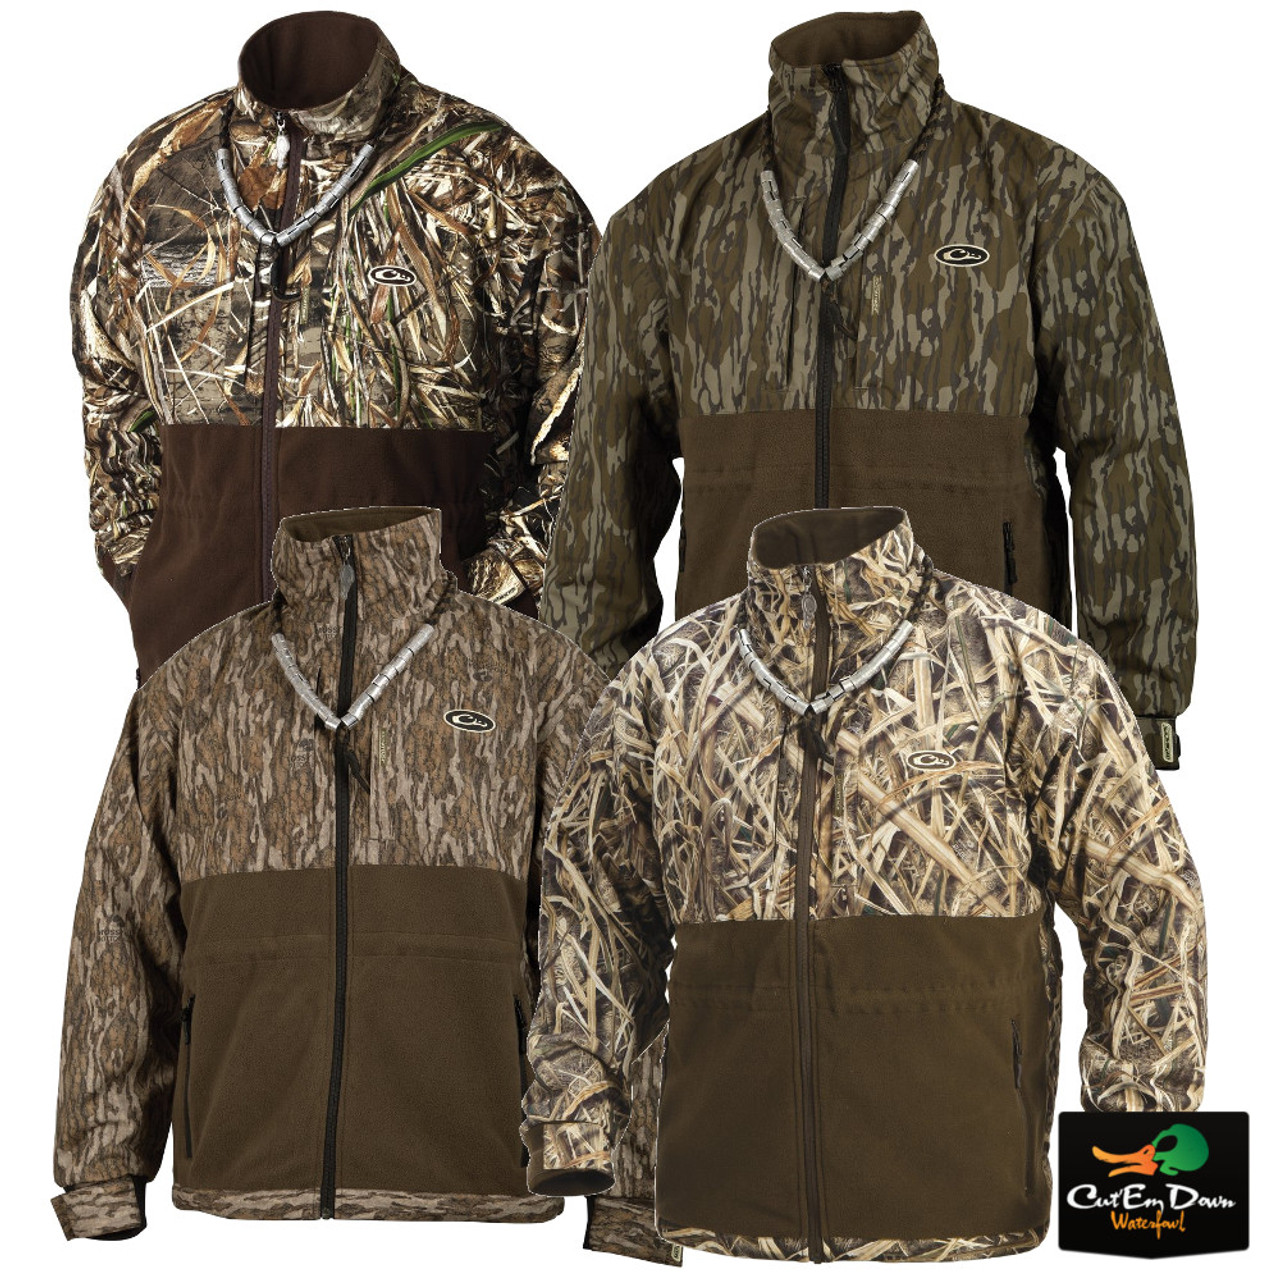 b125f0b2df6df You can buy with confidence as Drake are an Authorized Drake Waterfowl  dealer. Feel free to contact us with any questions you may have.